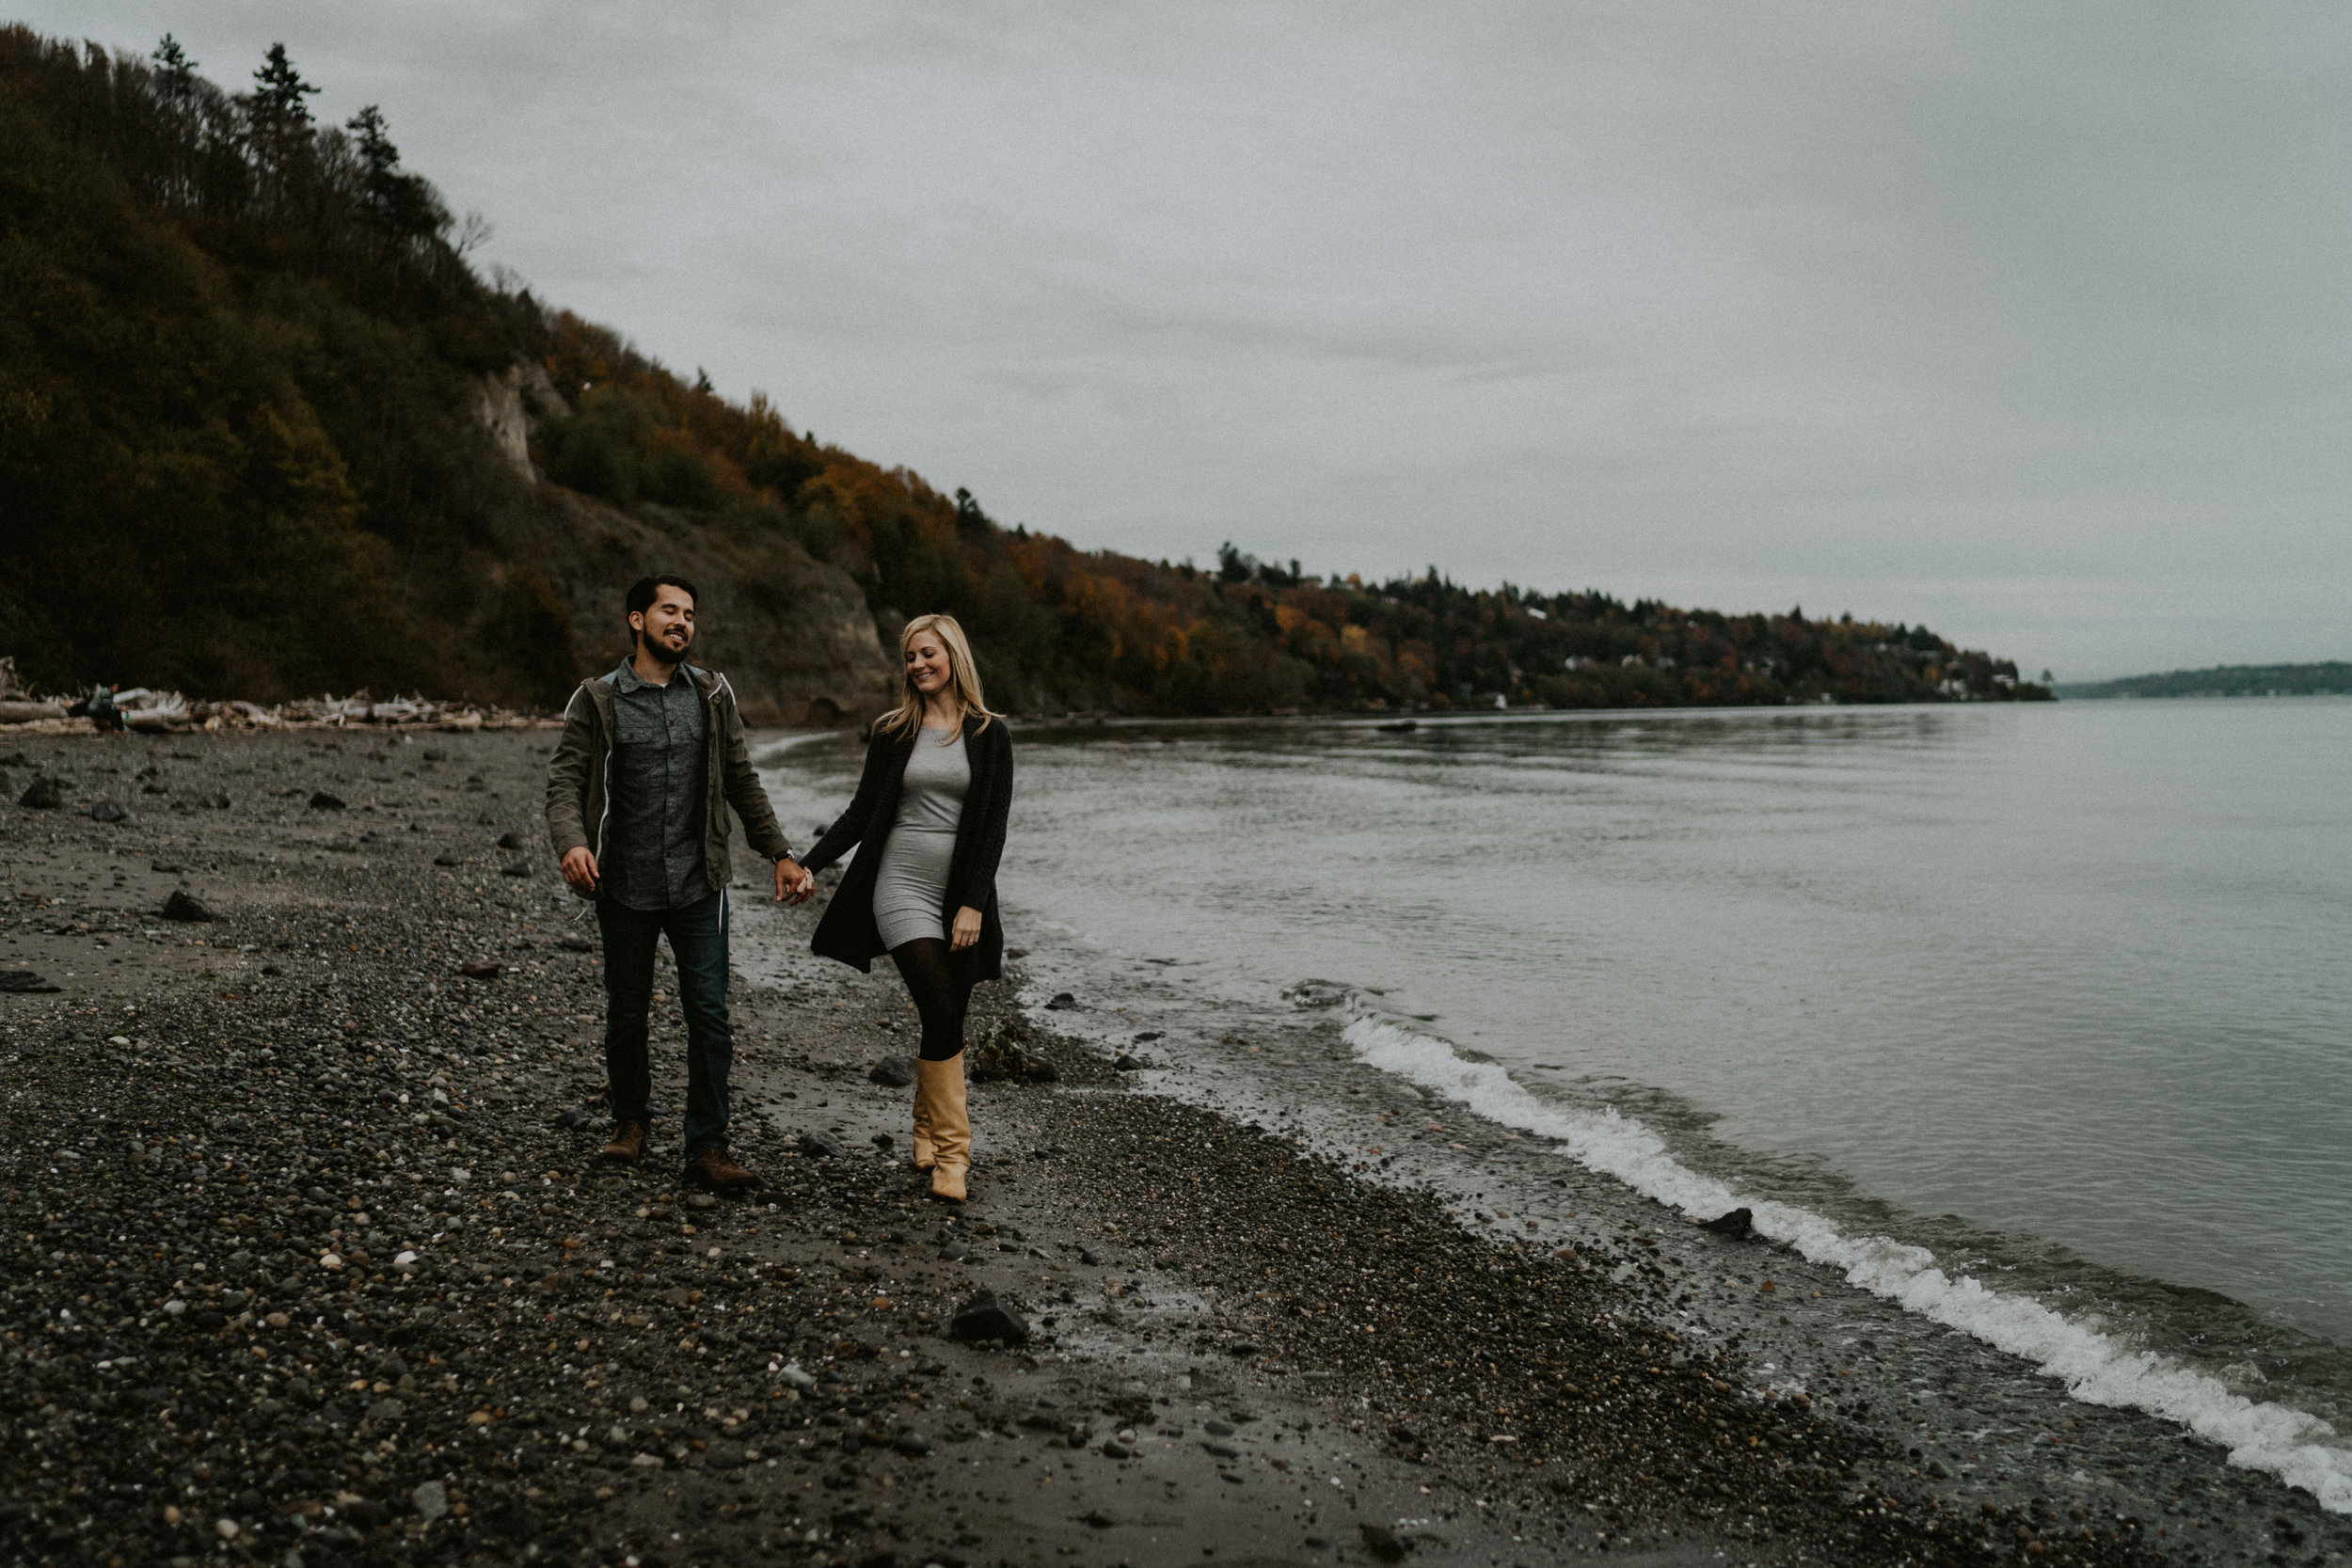 Seattle_engagement_wedding_photographer_Alfred_Tang-31.jpg